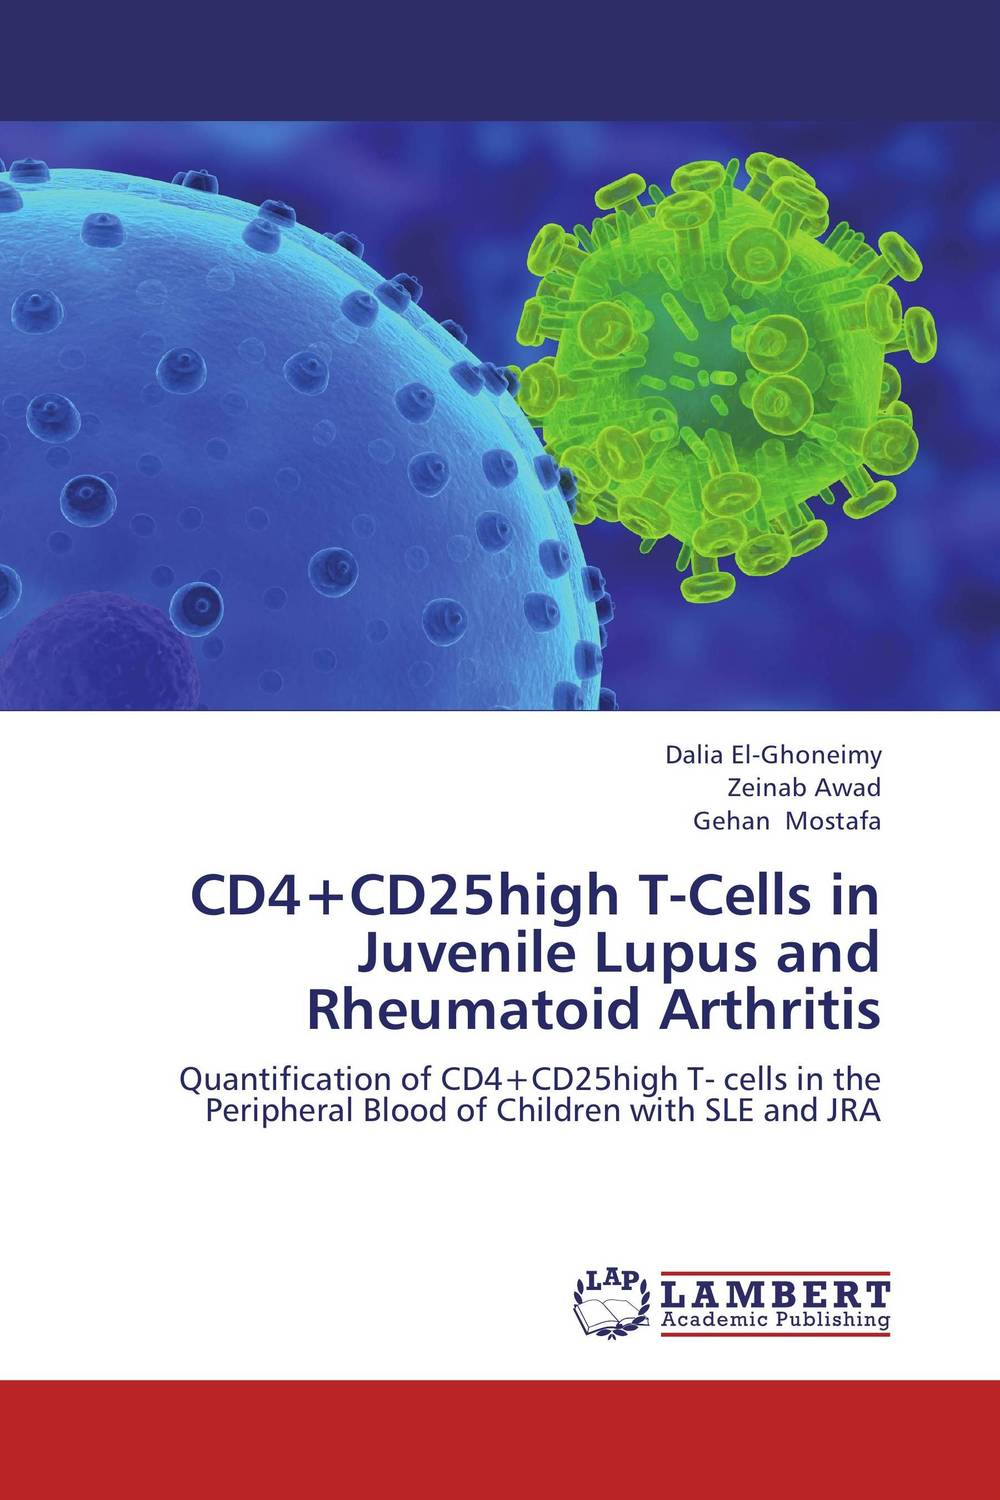 CD4+CD25high T-Cells in Juvenile Lupus and  Rheumatoid Arthritis cd диск the doors when you re strange a film about the doors songs from the motion picture 1 cd